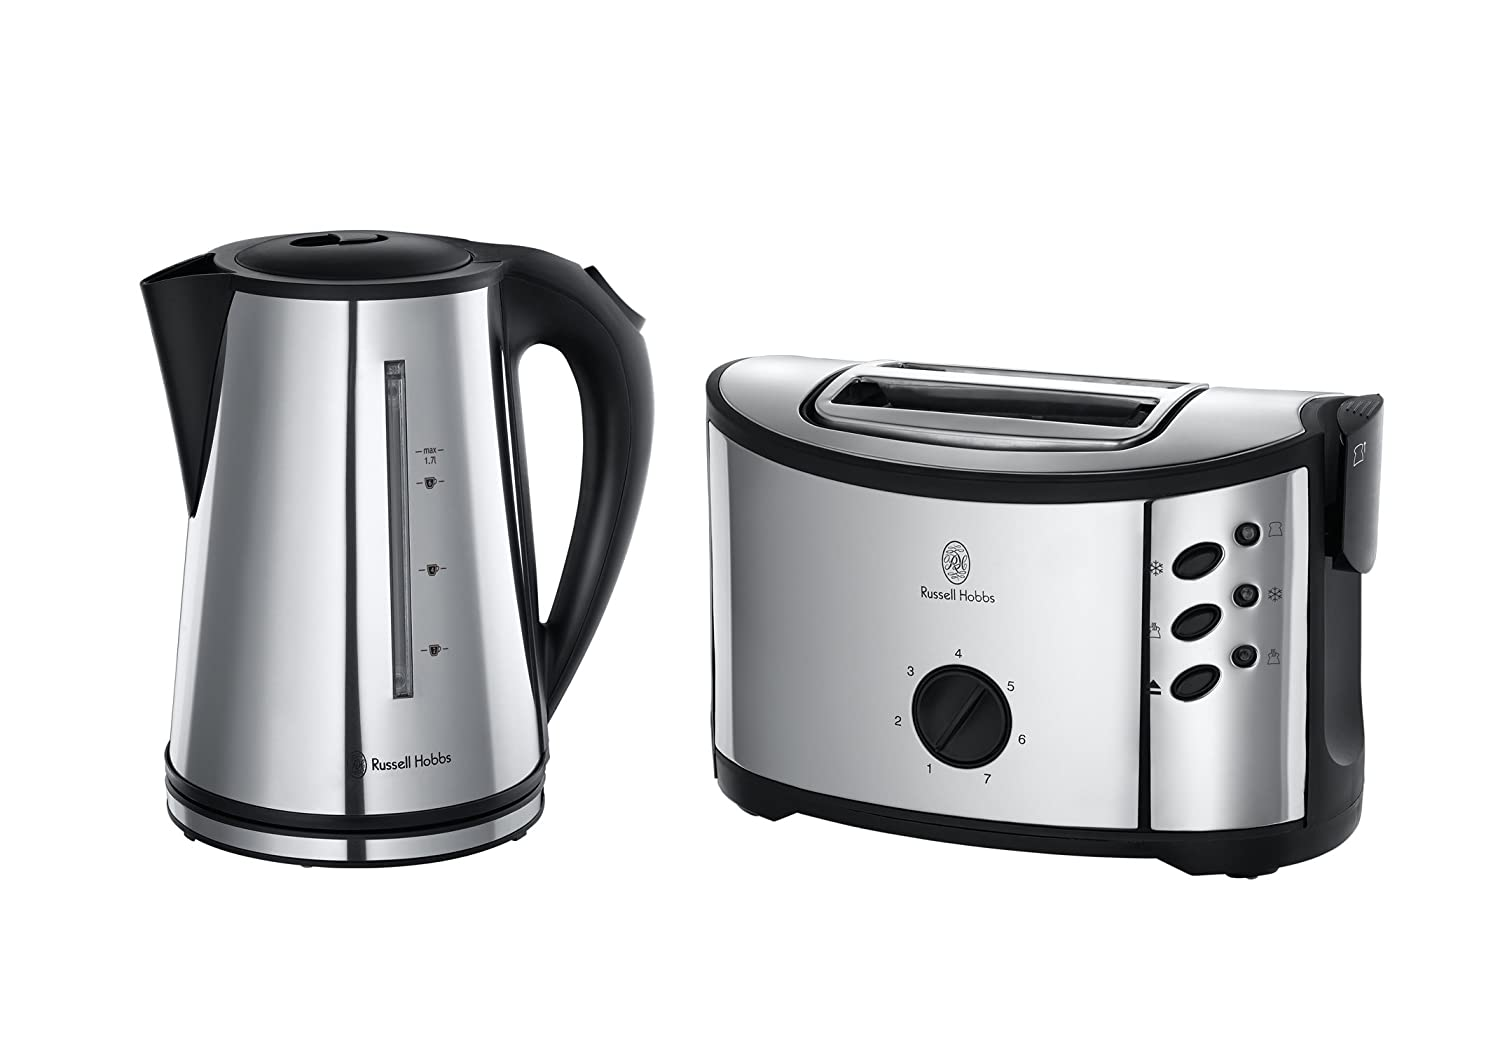 Kitchen kettles and toaster images for Kitchen set kettle toaster